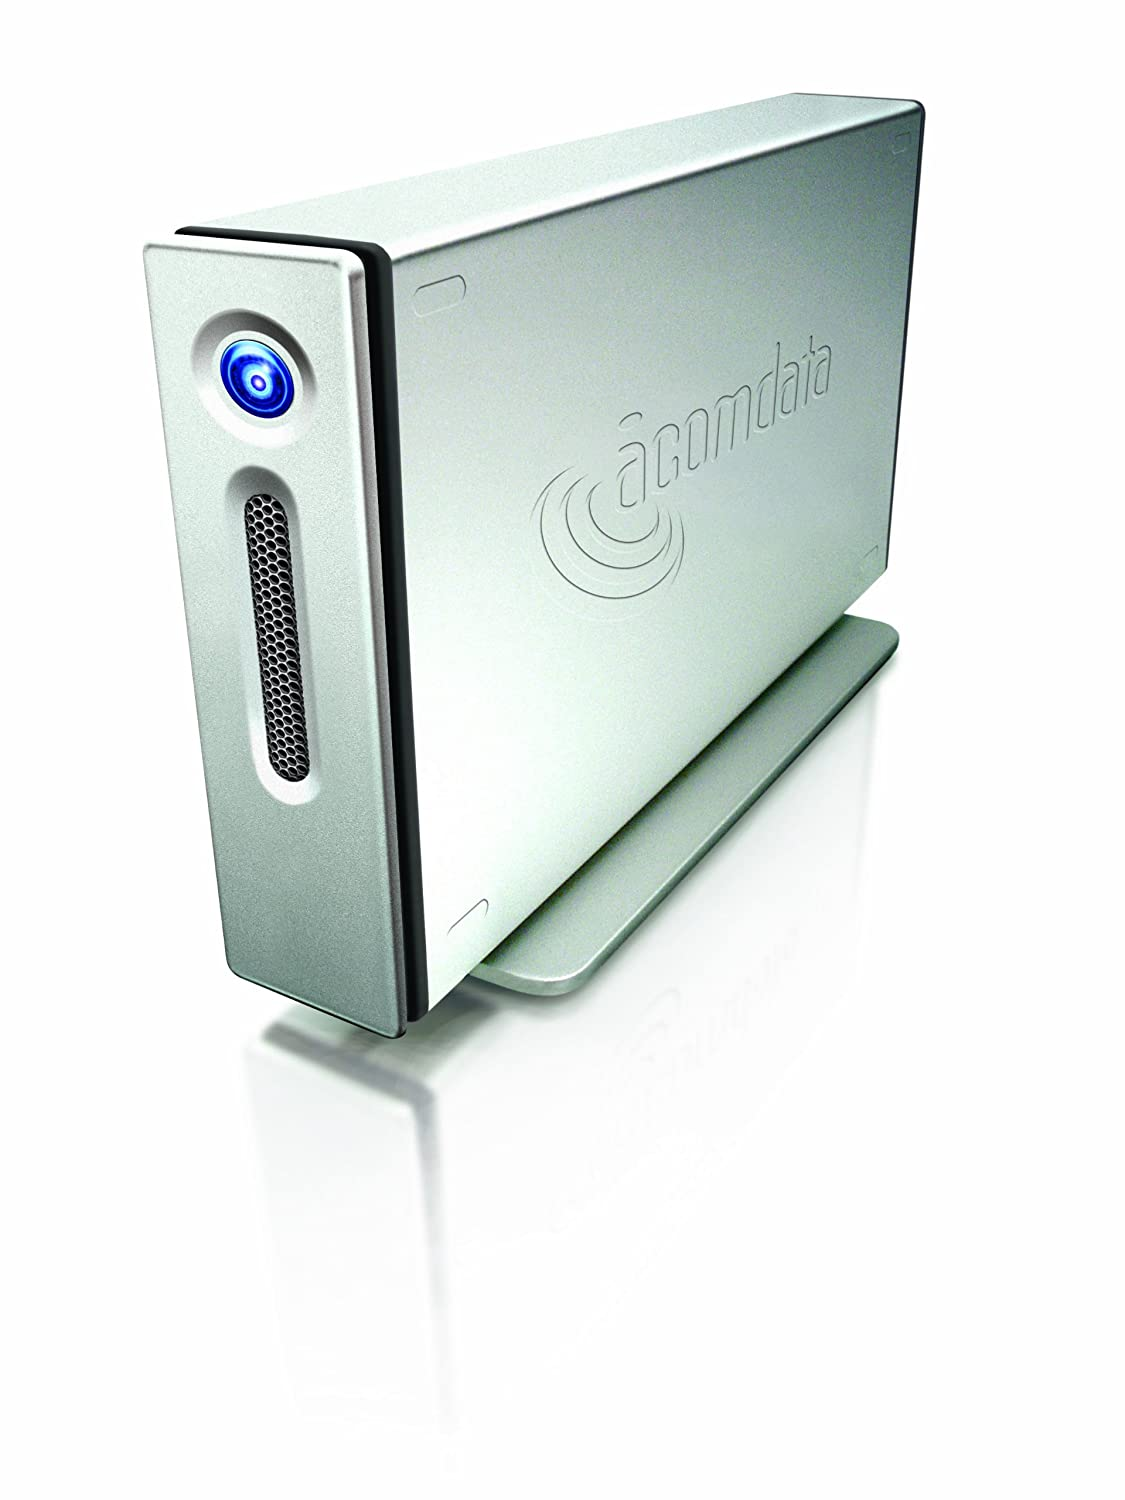 Amazon.com: Acomdata USB 2.0 3.5-Inch SATA Hard Disk Enclosure ...